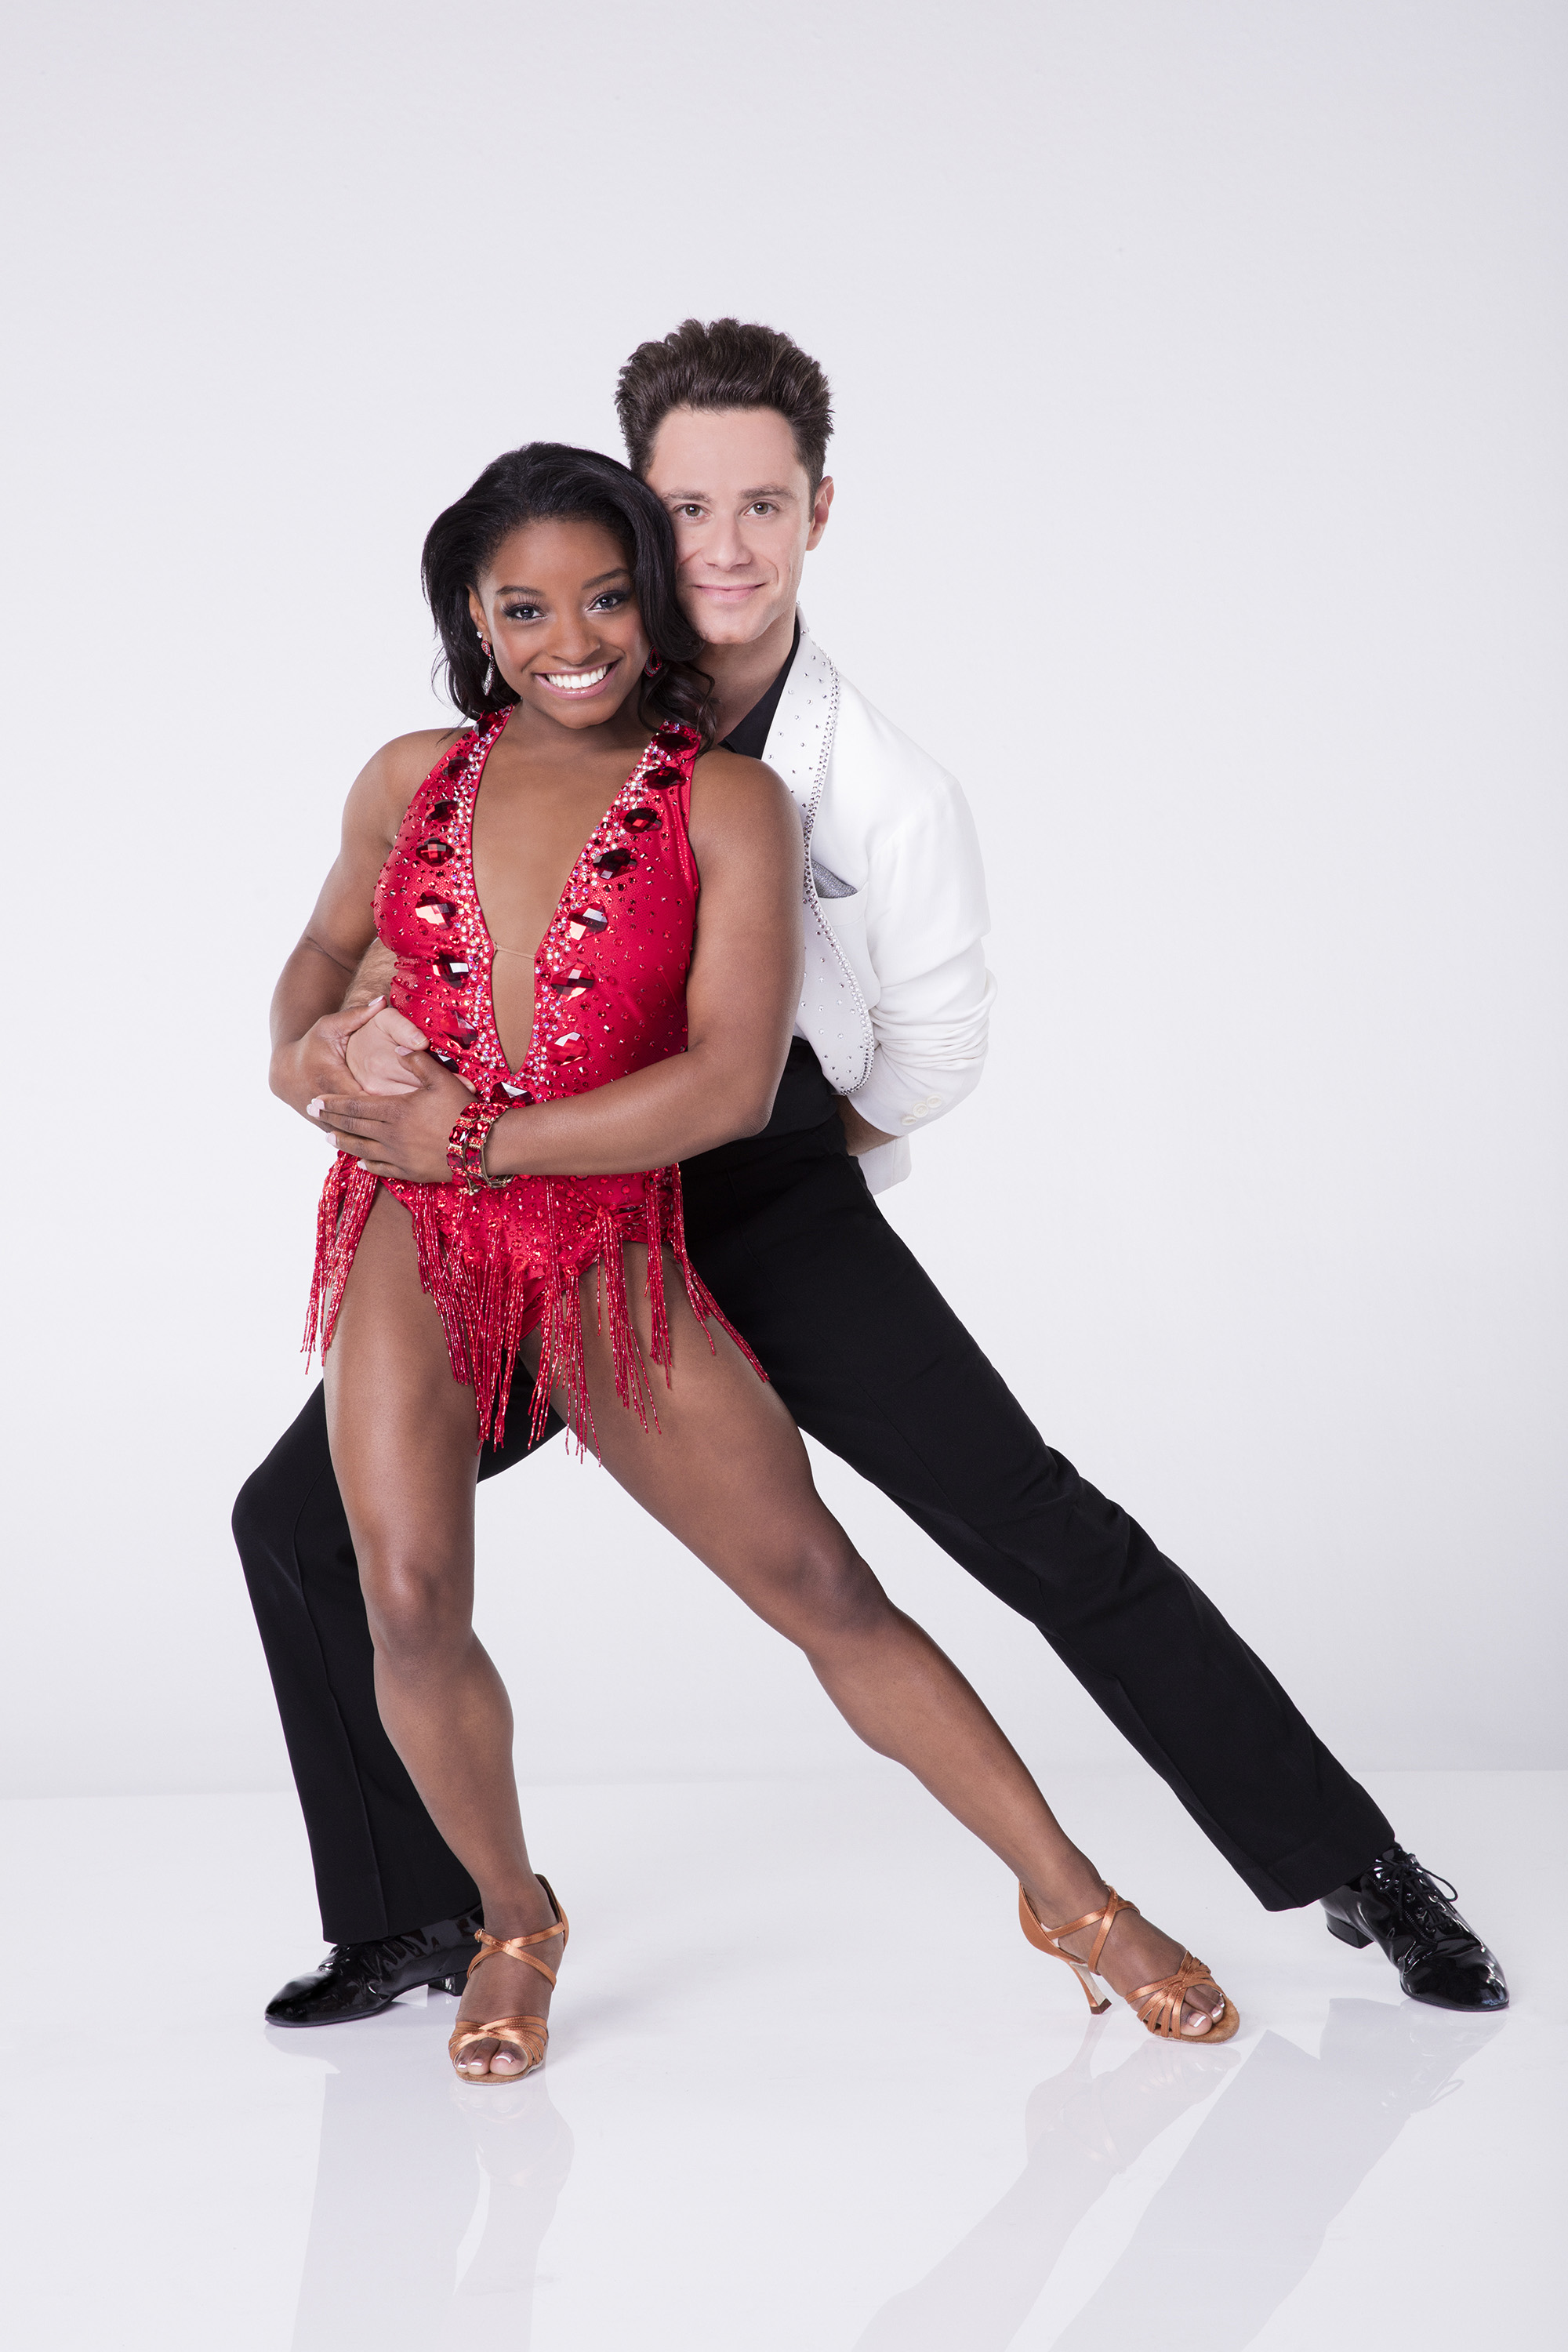 """PICTURE PERFECT Simone Biles poses with her dance partner Sasha Farber for """"Dancing with the Stars"""" (DWTS) pictures. Biles is not the first gymnast from her group, the Final Five, to compete in DWTS. Laurie Hernandez, 16, won the mirror ball trophy last year."""